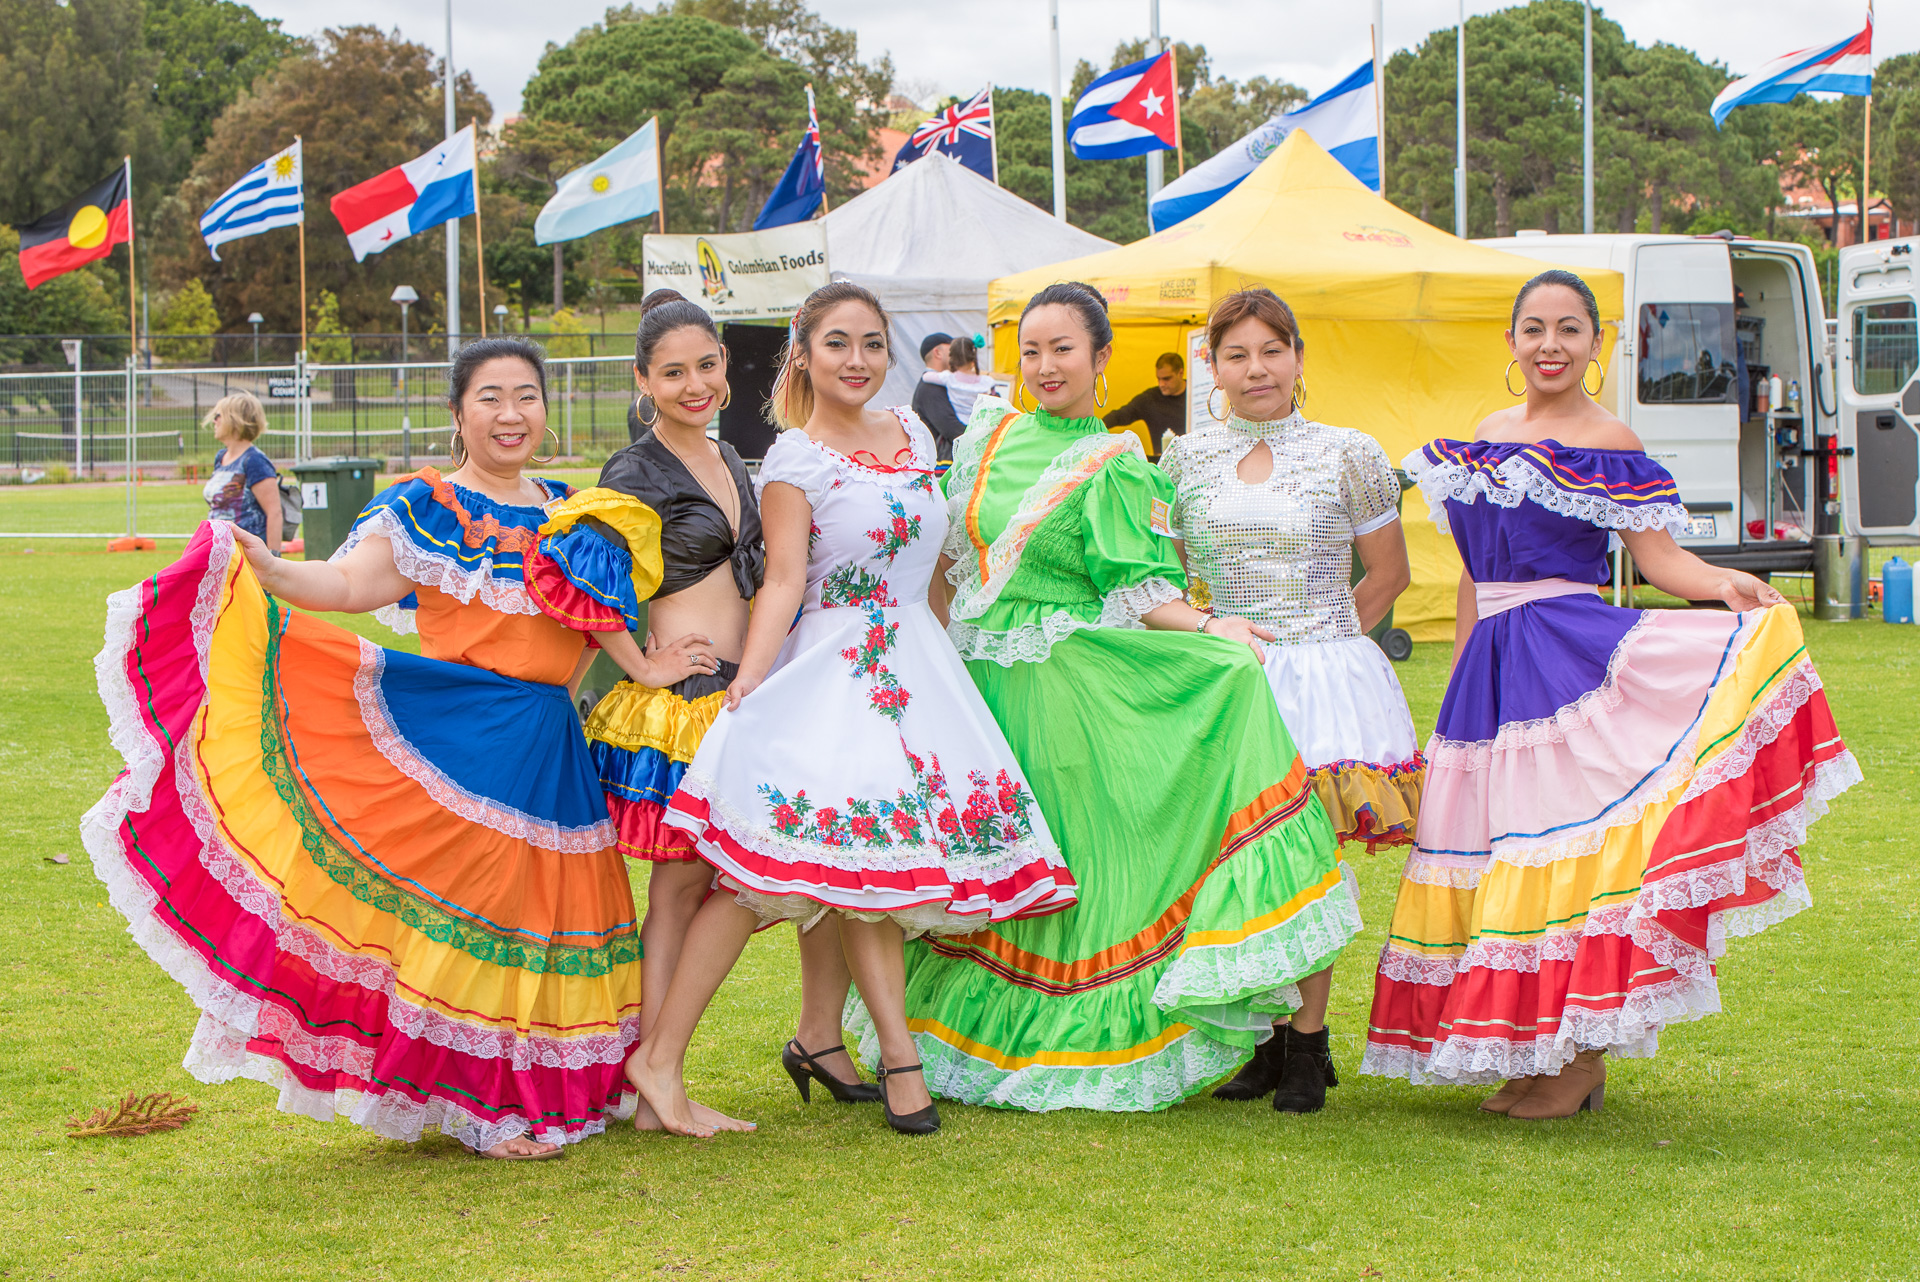 South American Dancers at Festival